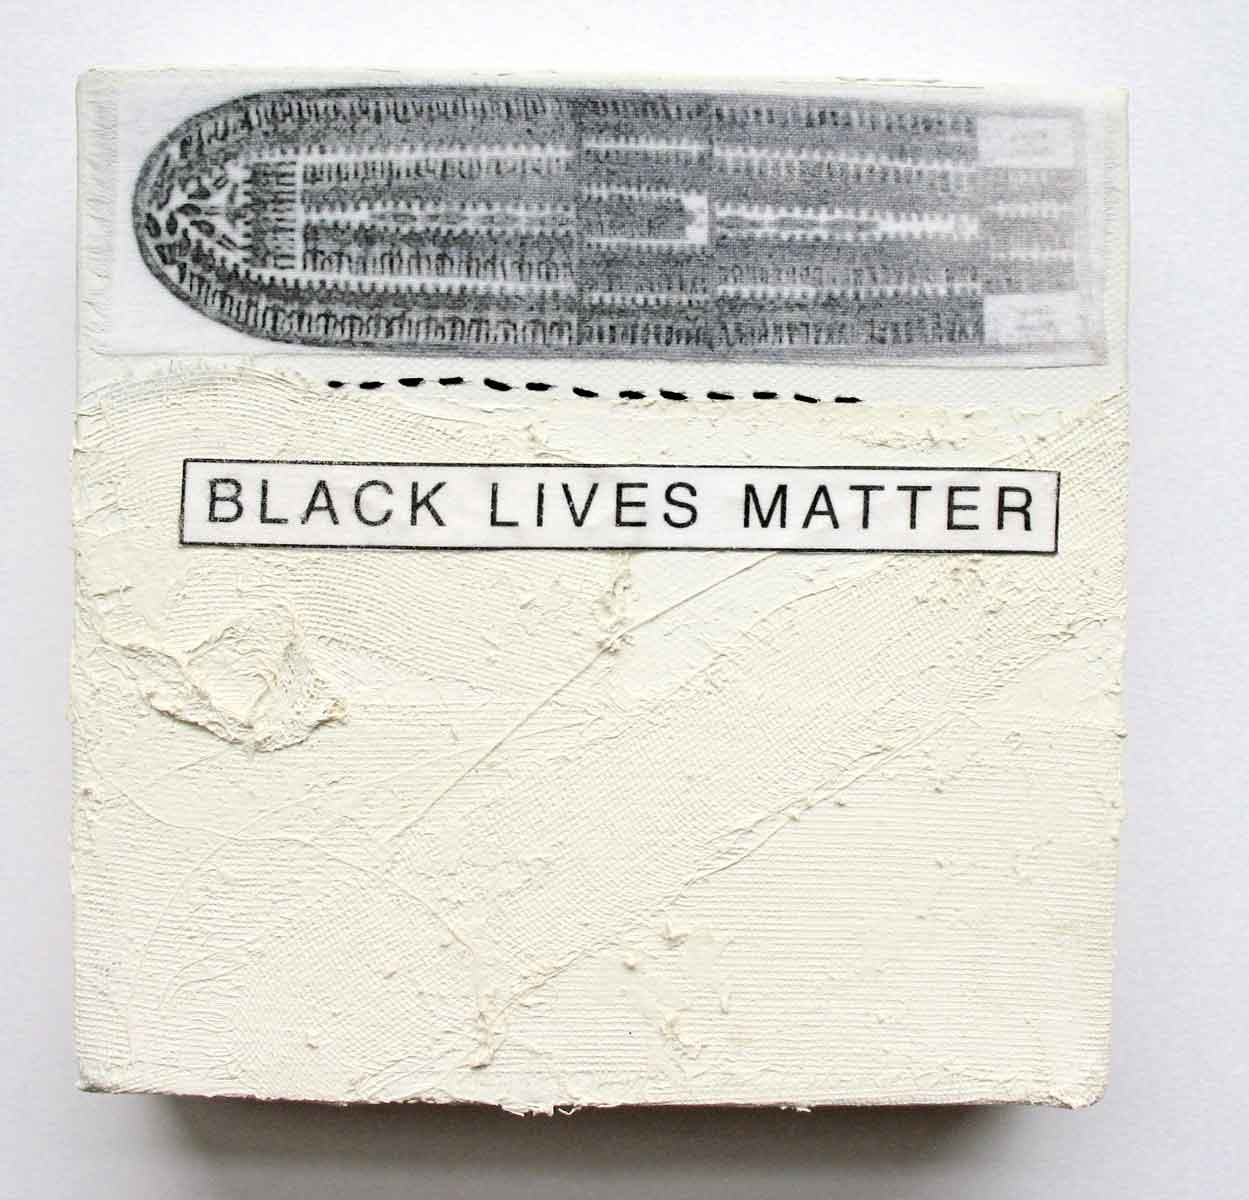 Series: Black Lives Matter